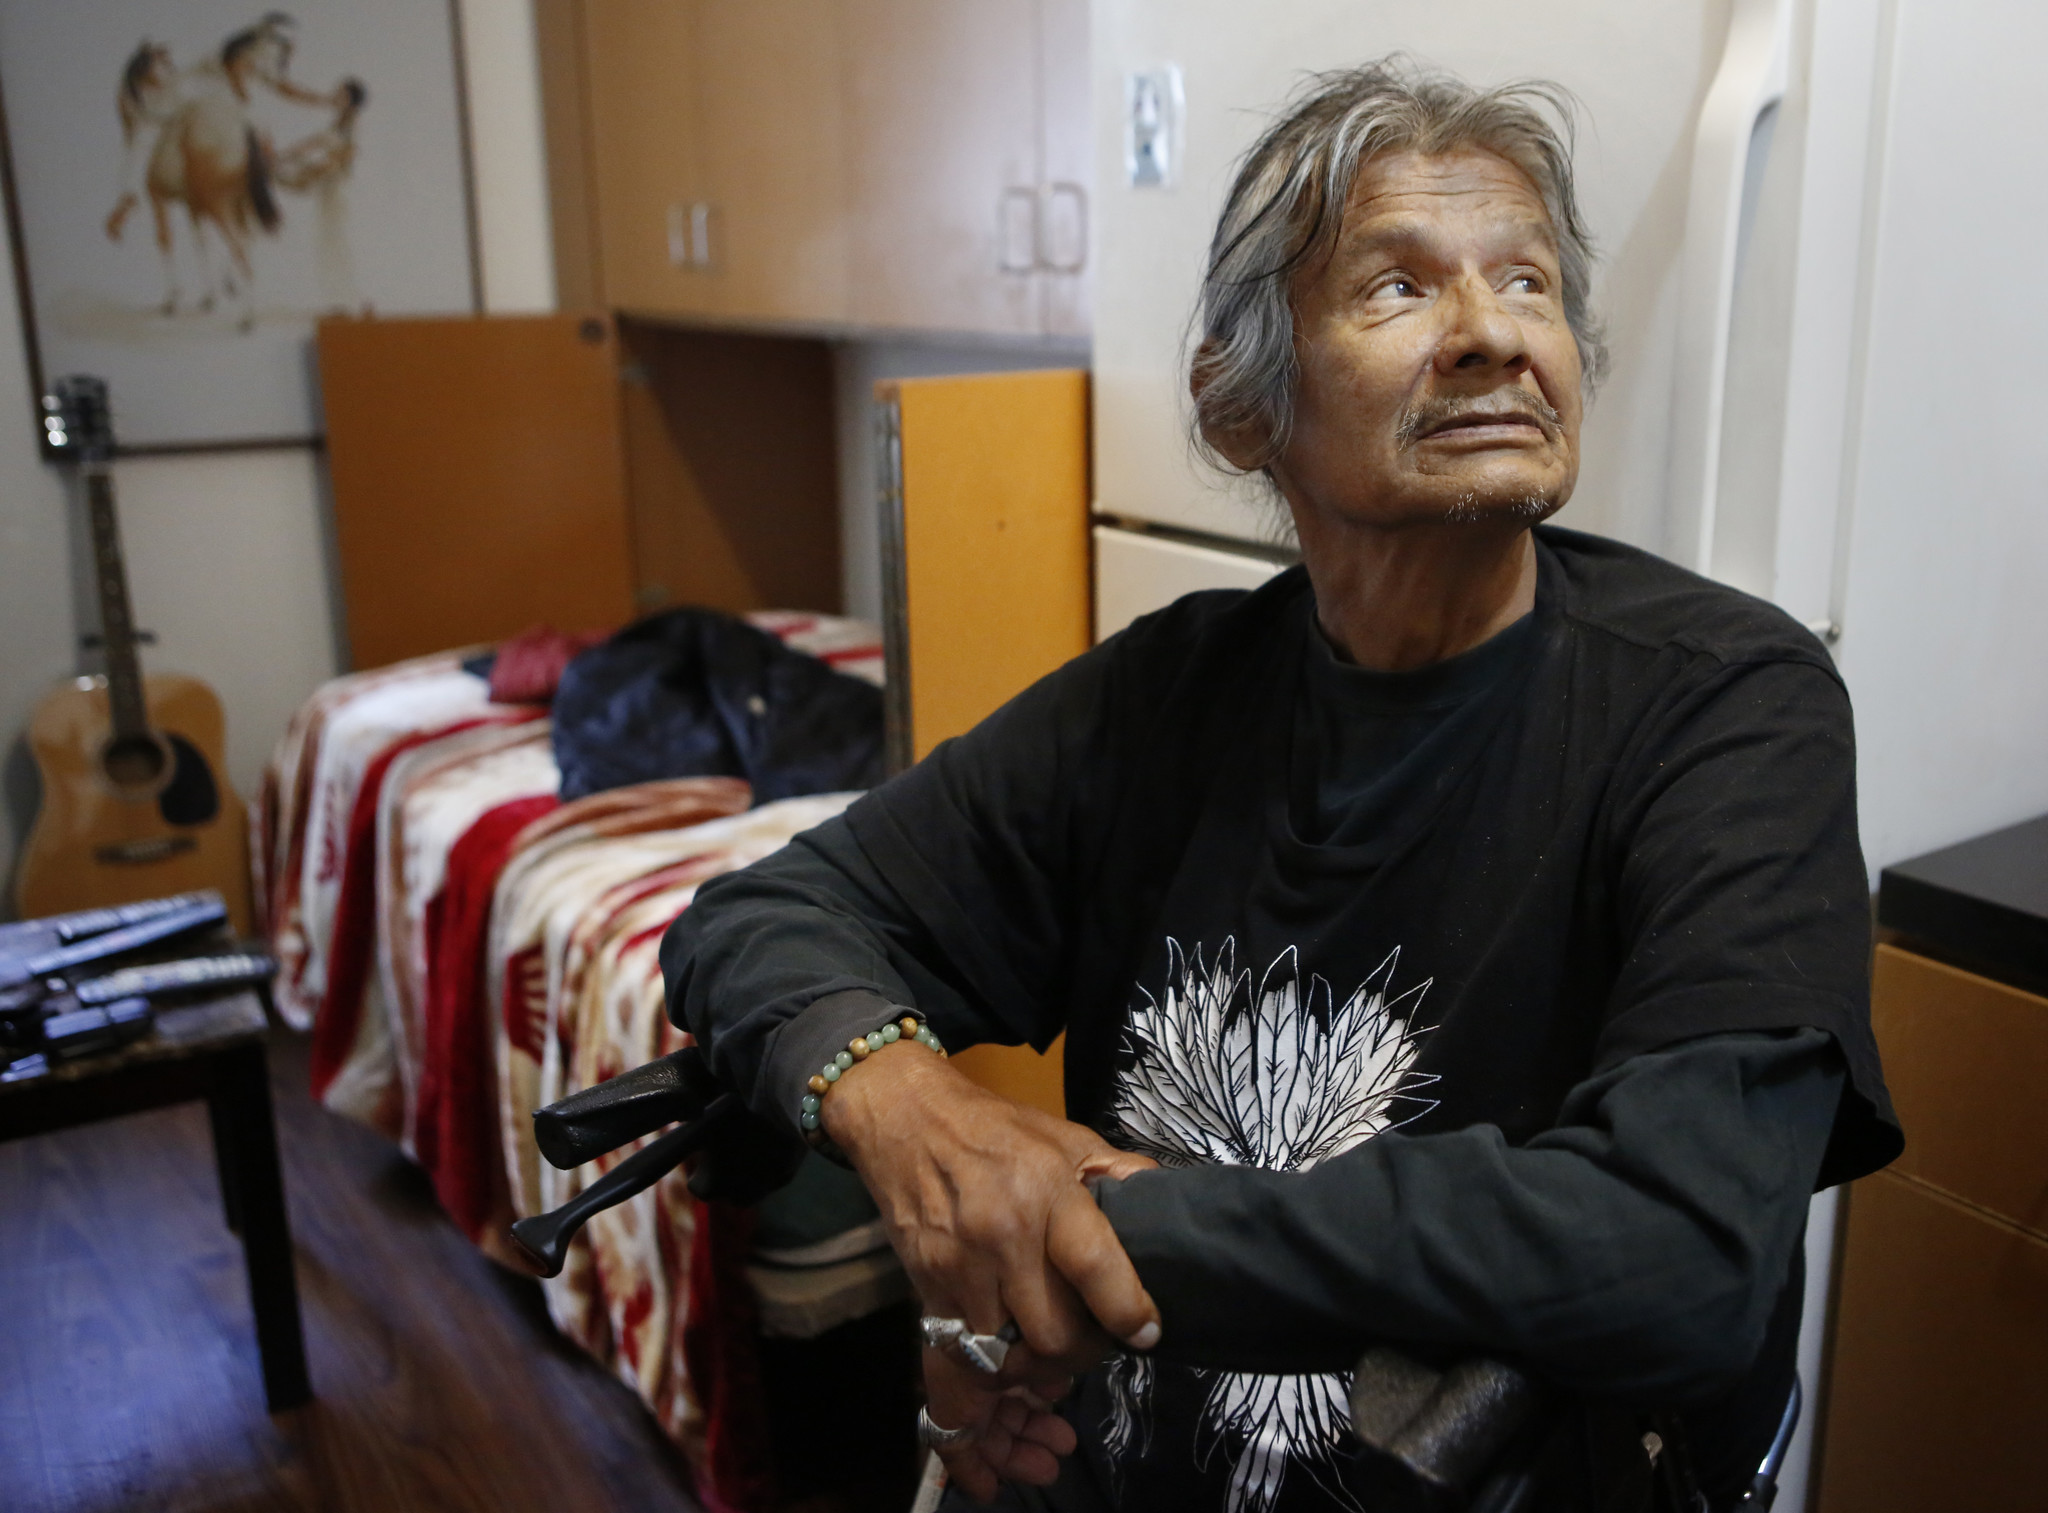 Richard LaRush, 65, in his apartment at Step Up on Second.